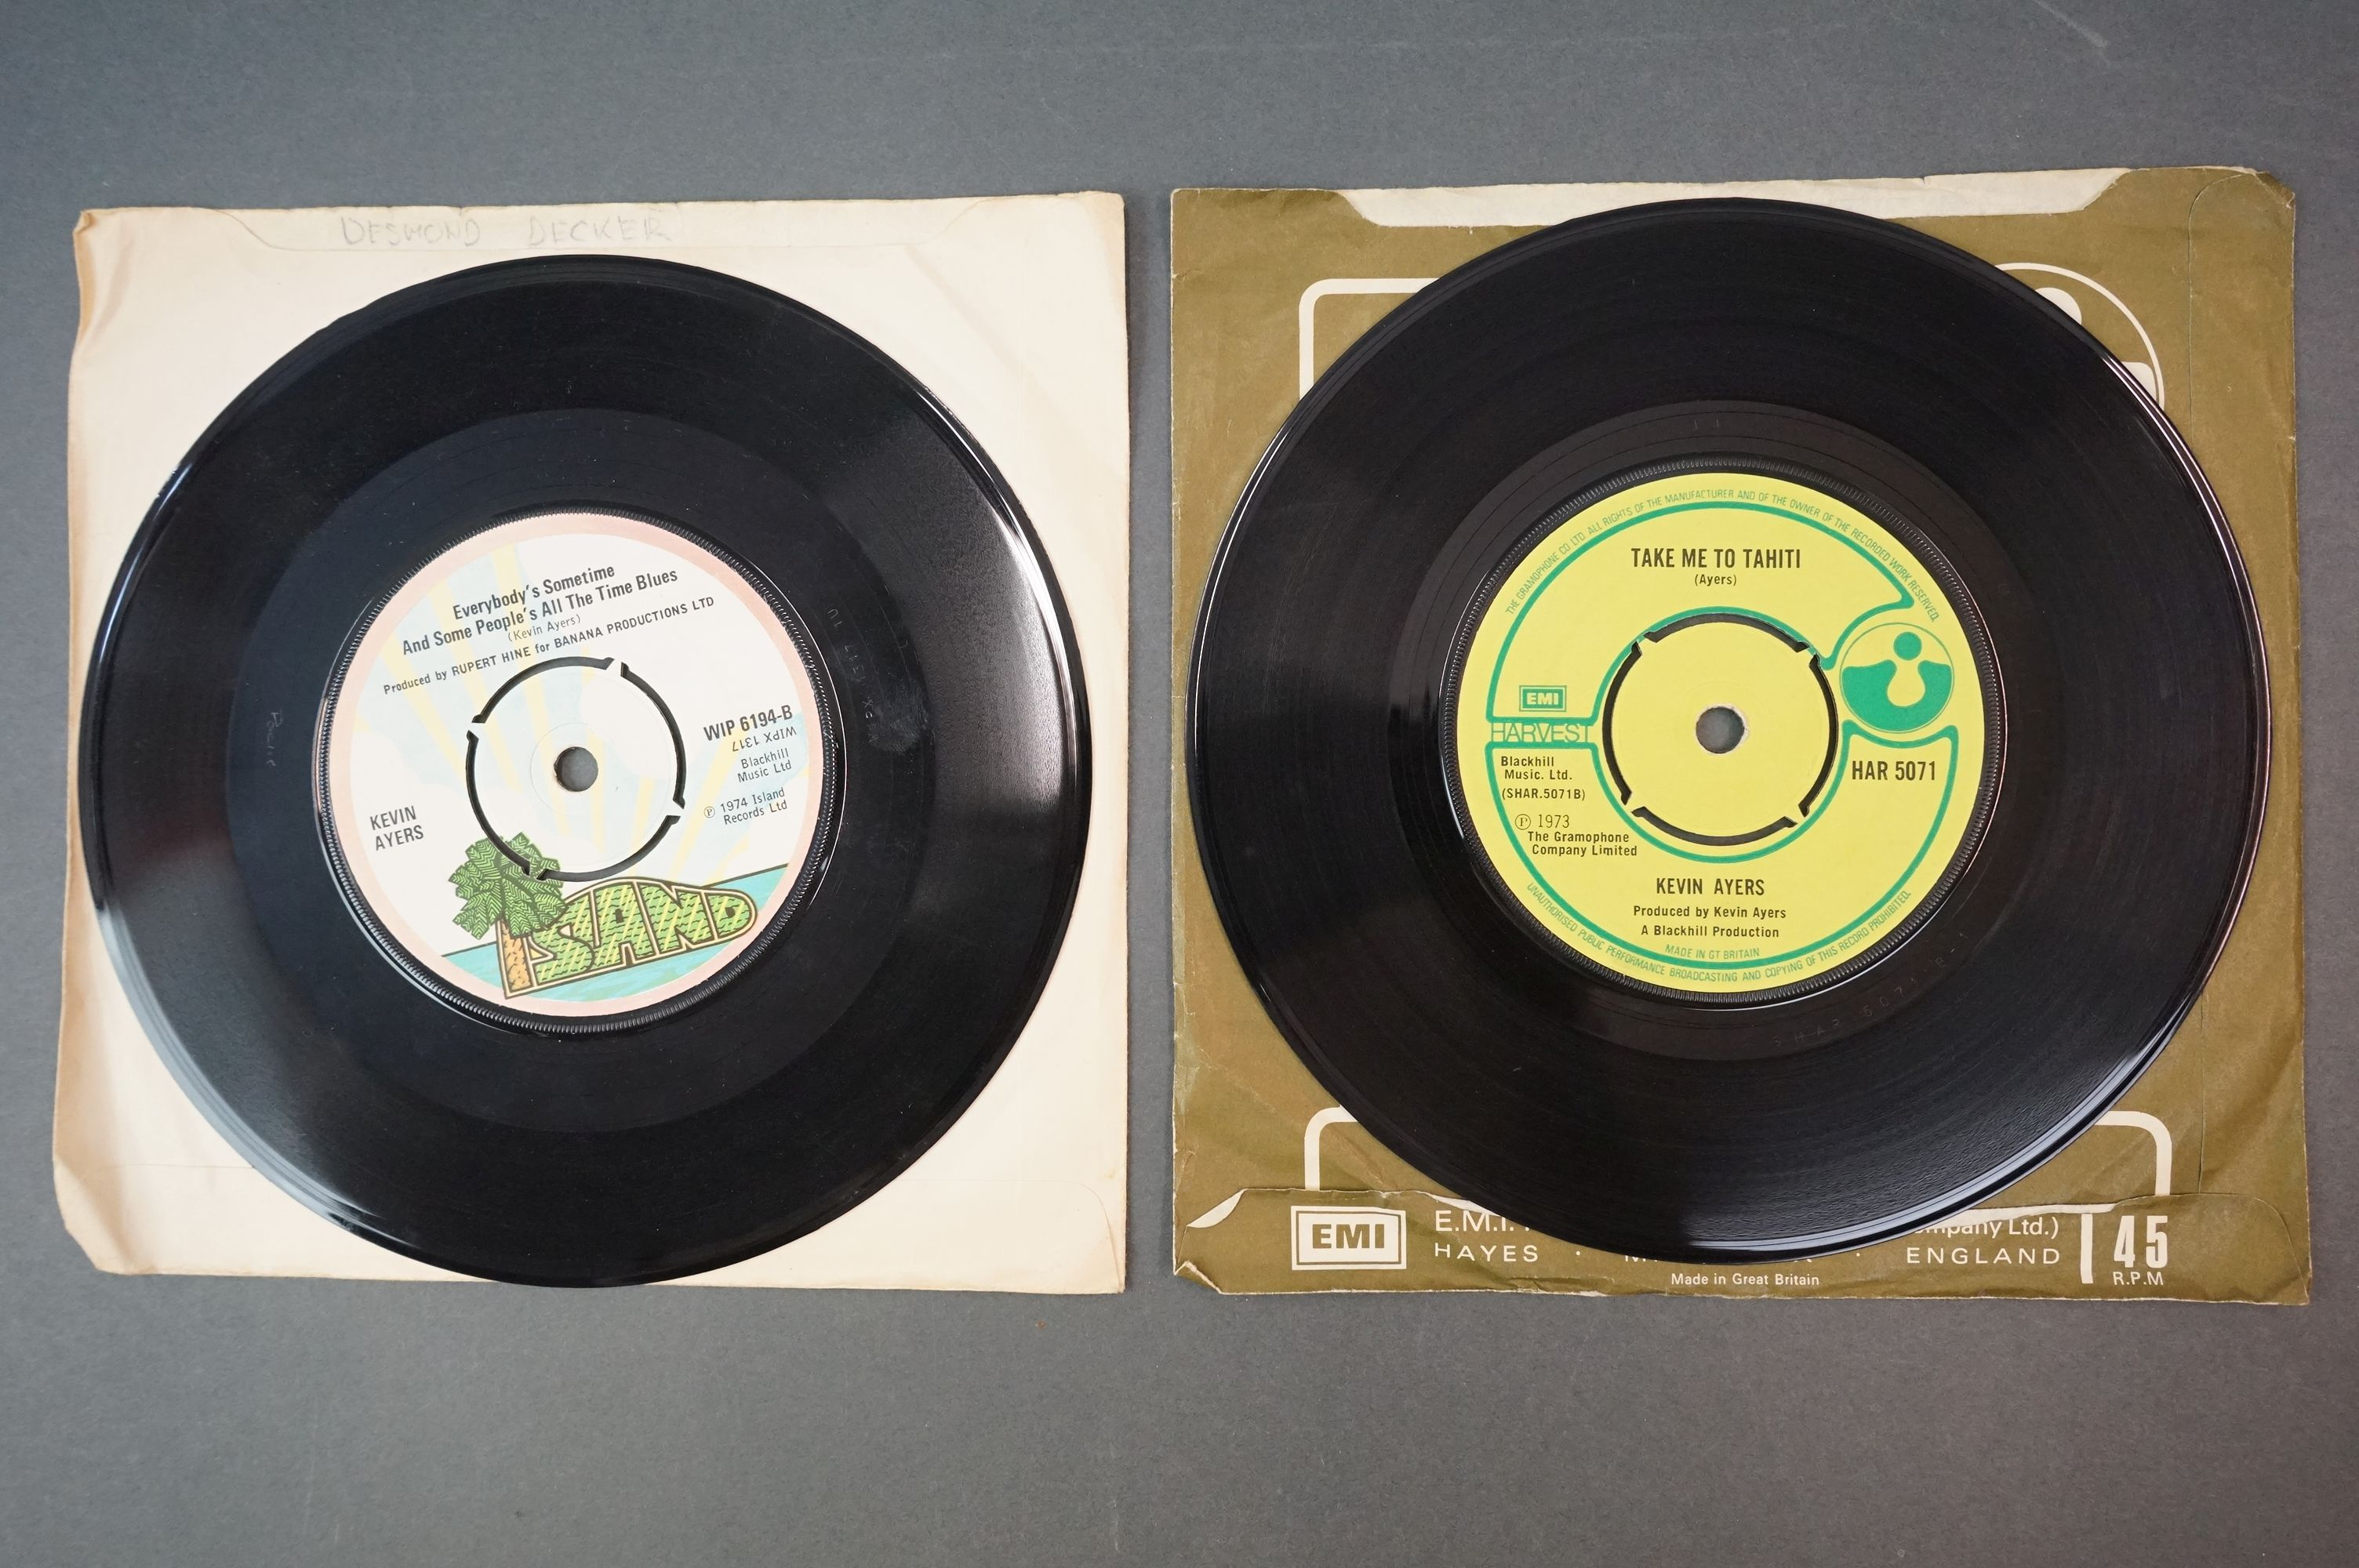 Vinyl - Kevin Ayers 1 LP The Confessions Of Dr Dream (ILPS 9263) lyric inner plus 7 inch singles - Image 5 of 5